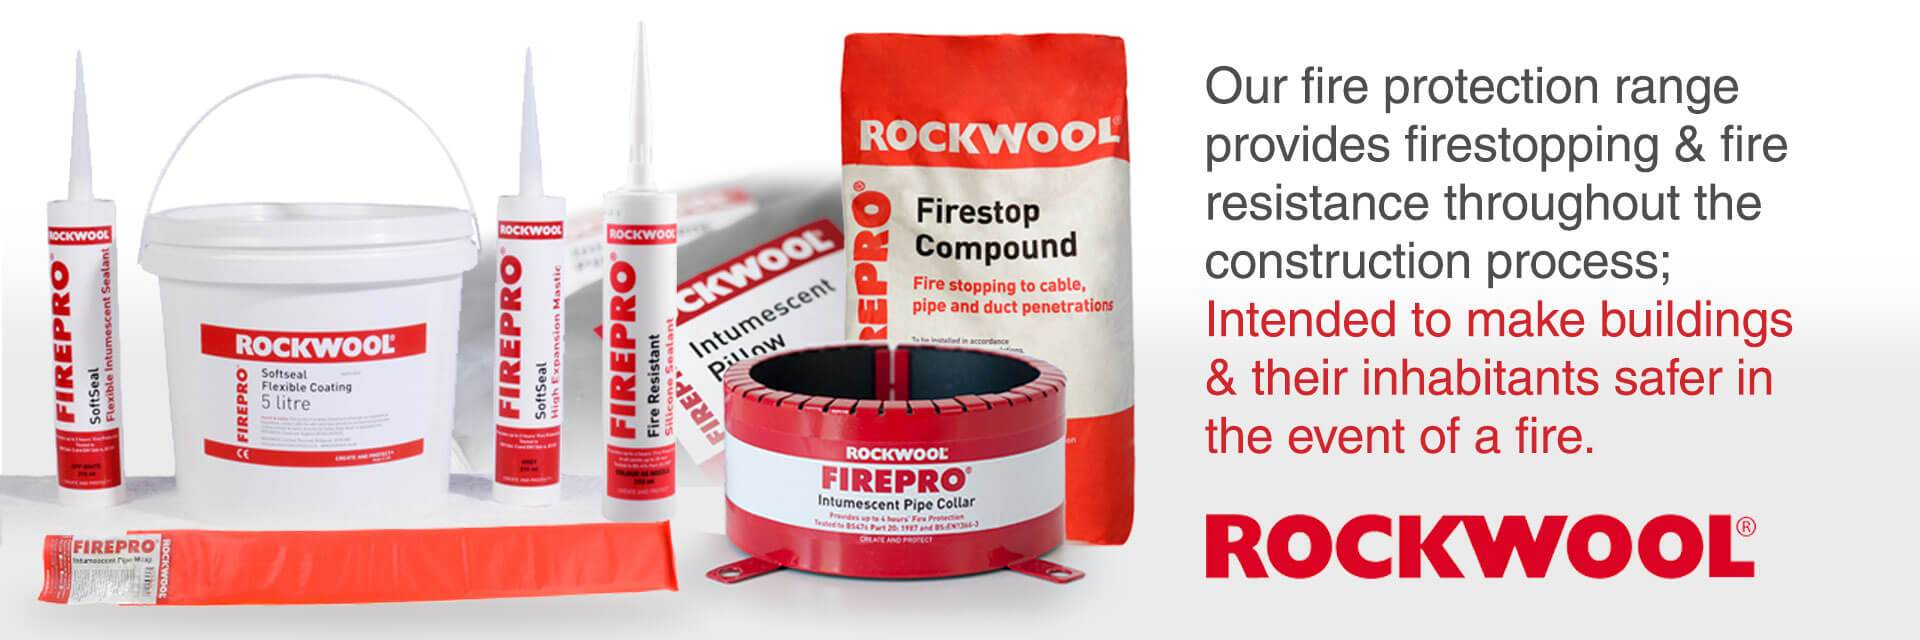 Rockwool fire